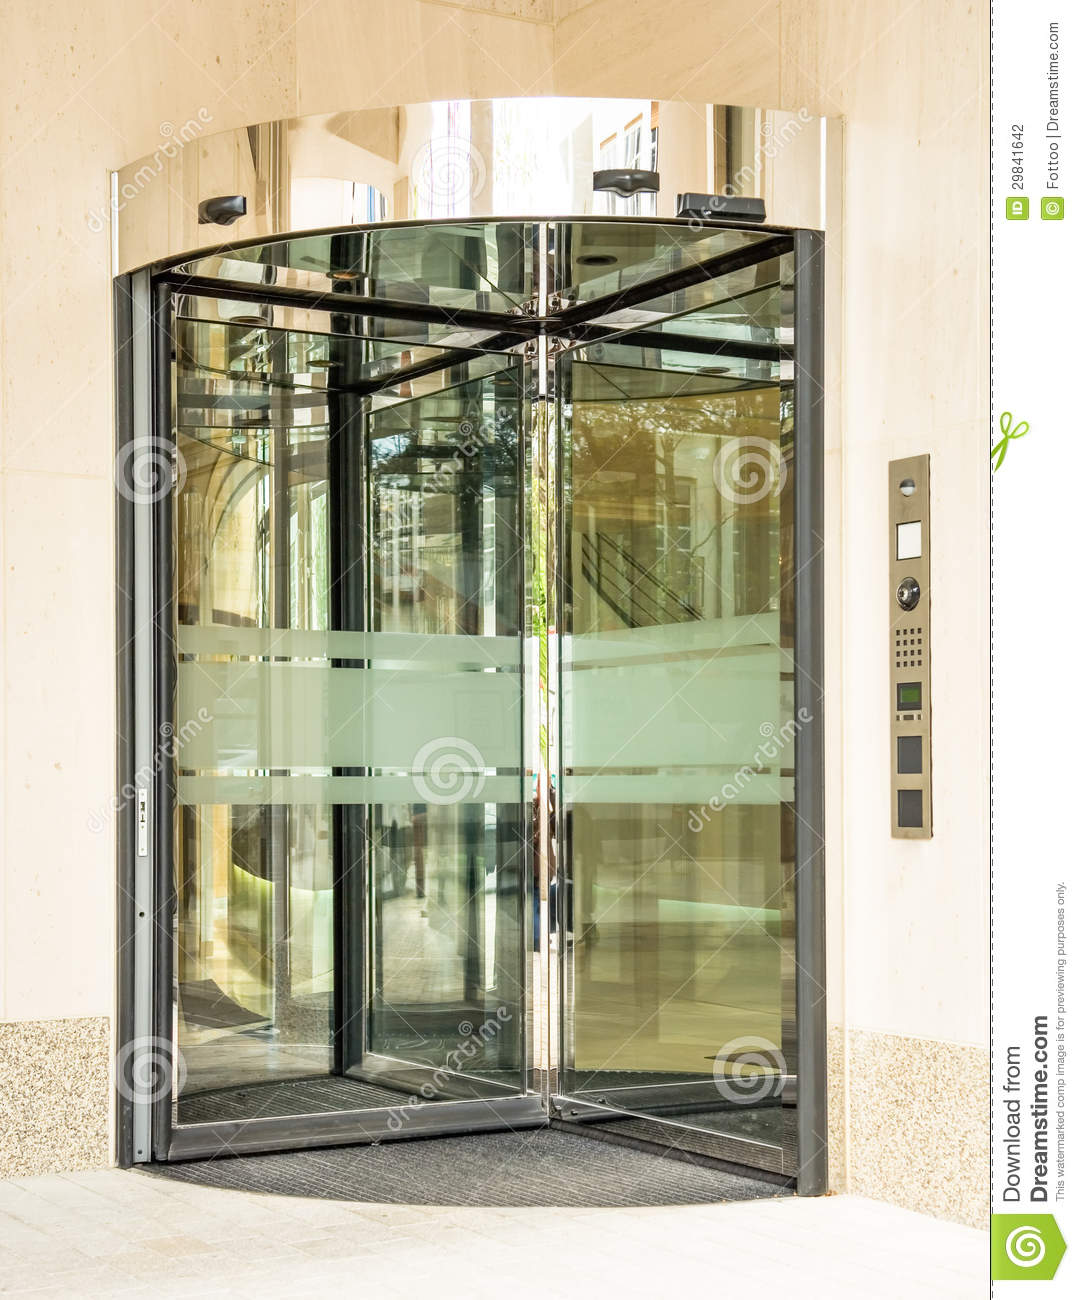 Revolving doors stock photography image 29841642